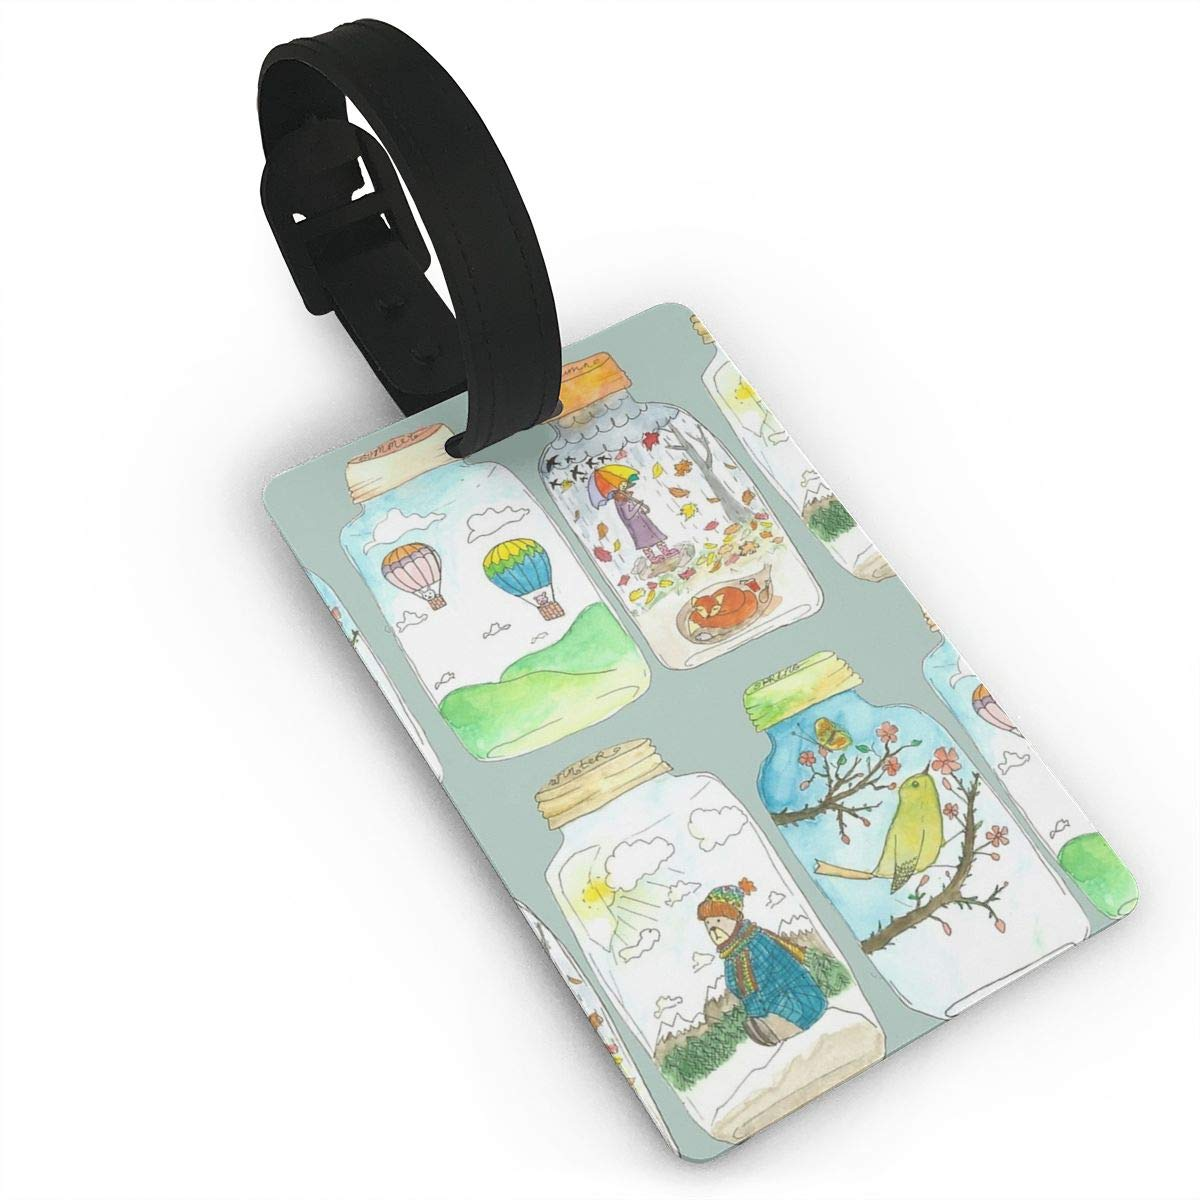 Set of 2 Season In The Jar Luggage Tags Suitcase Labels Bag Travel Accessories